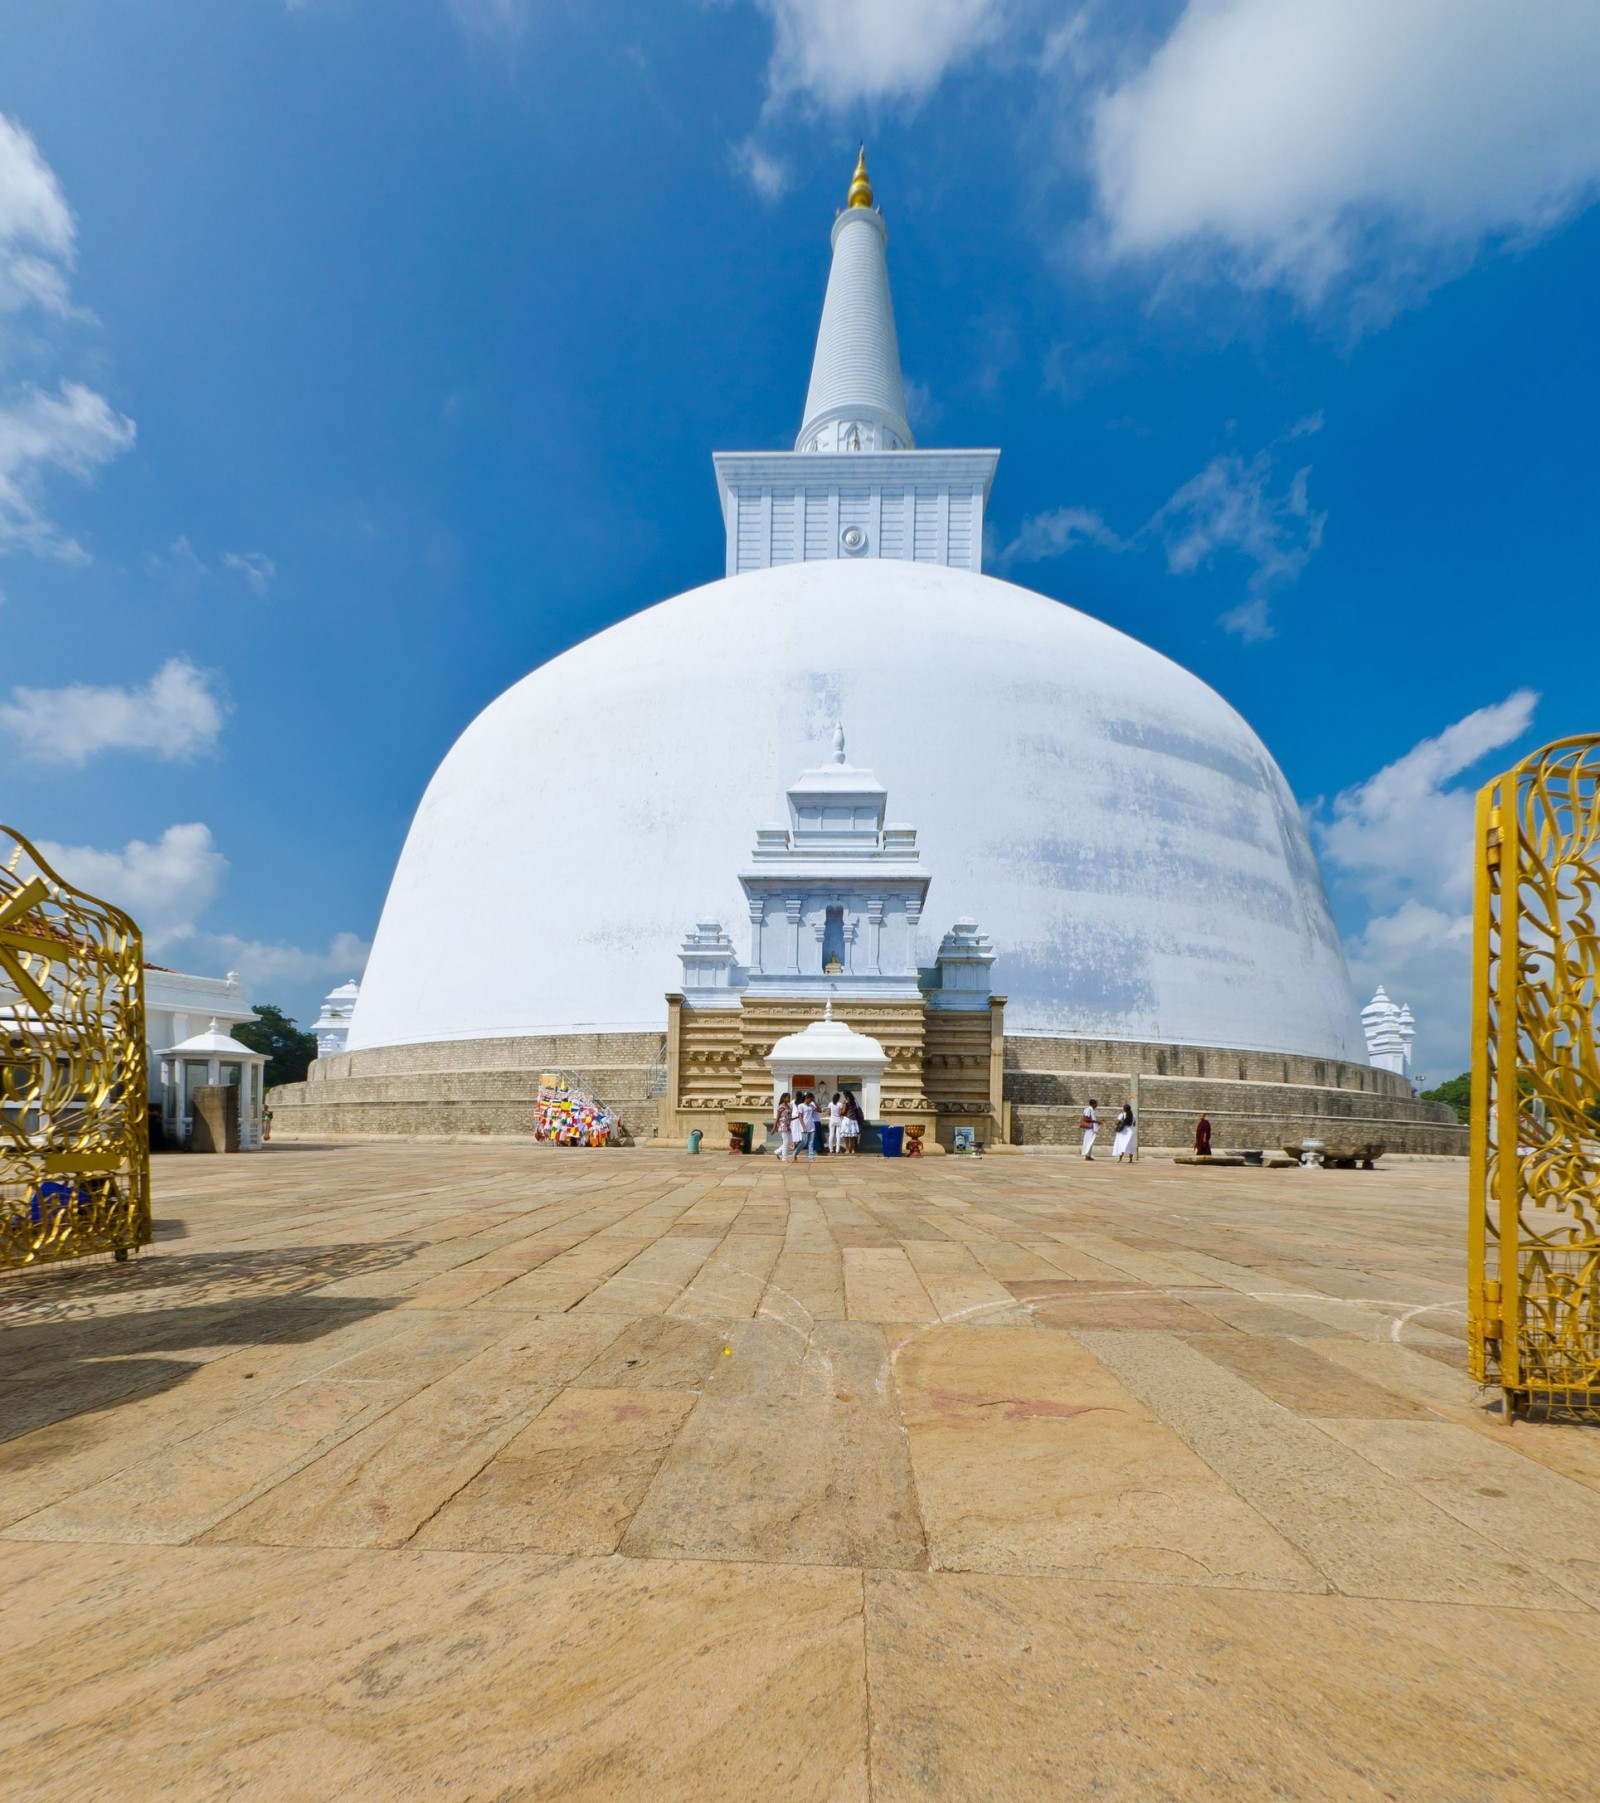 ruwanwelisaya-chedi-in-the-sacred-city-of-anuradhapura-sri-lanka